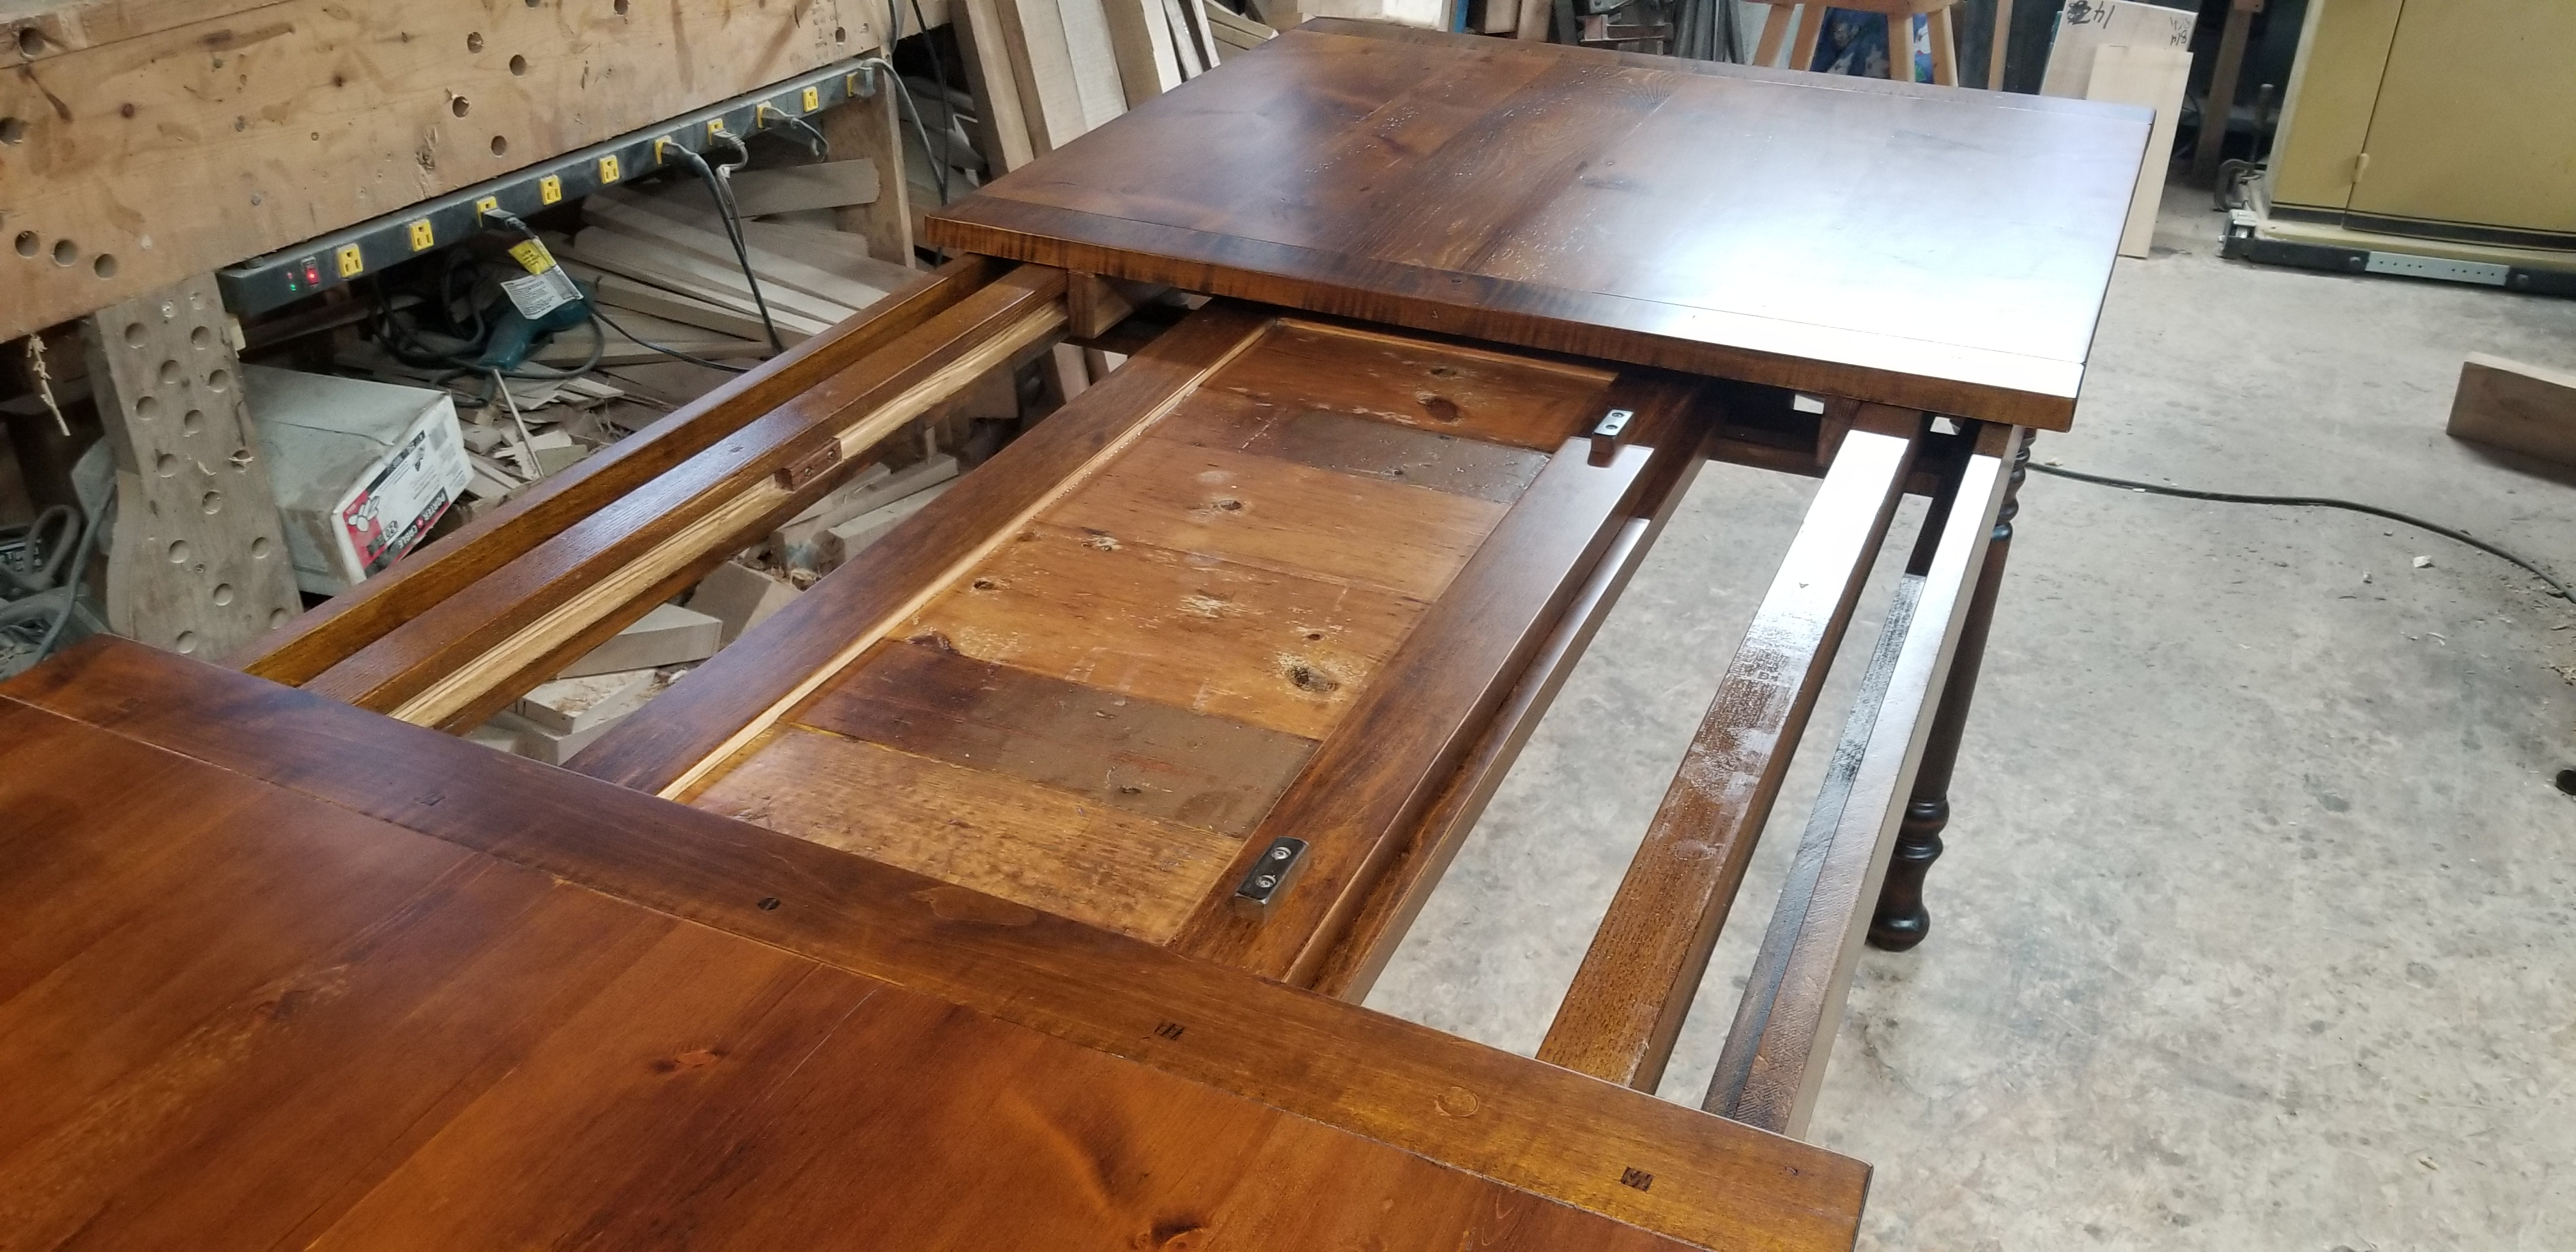 6' center-leaf table